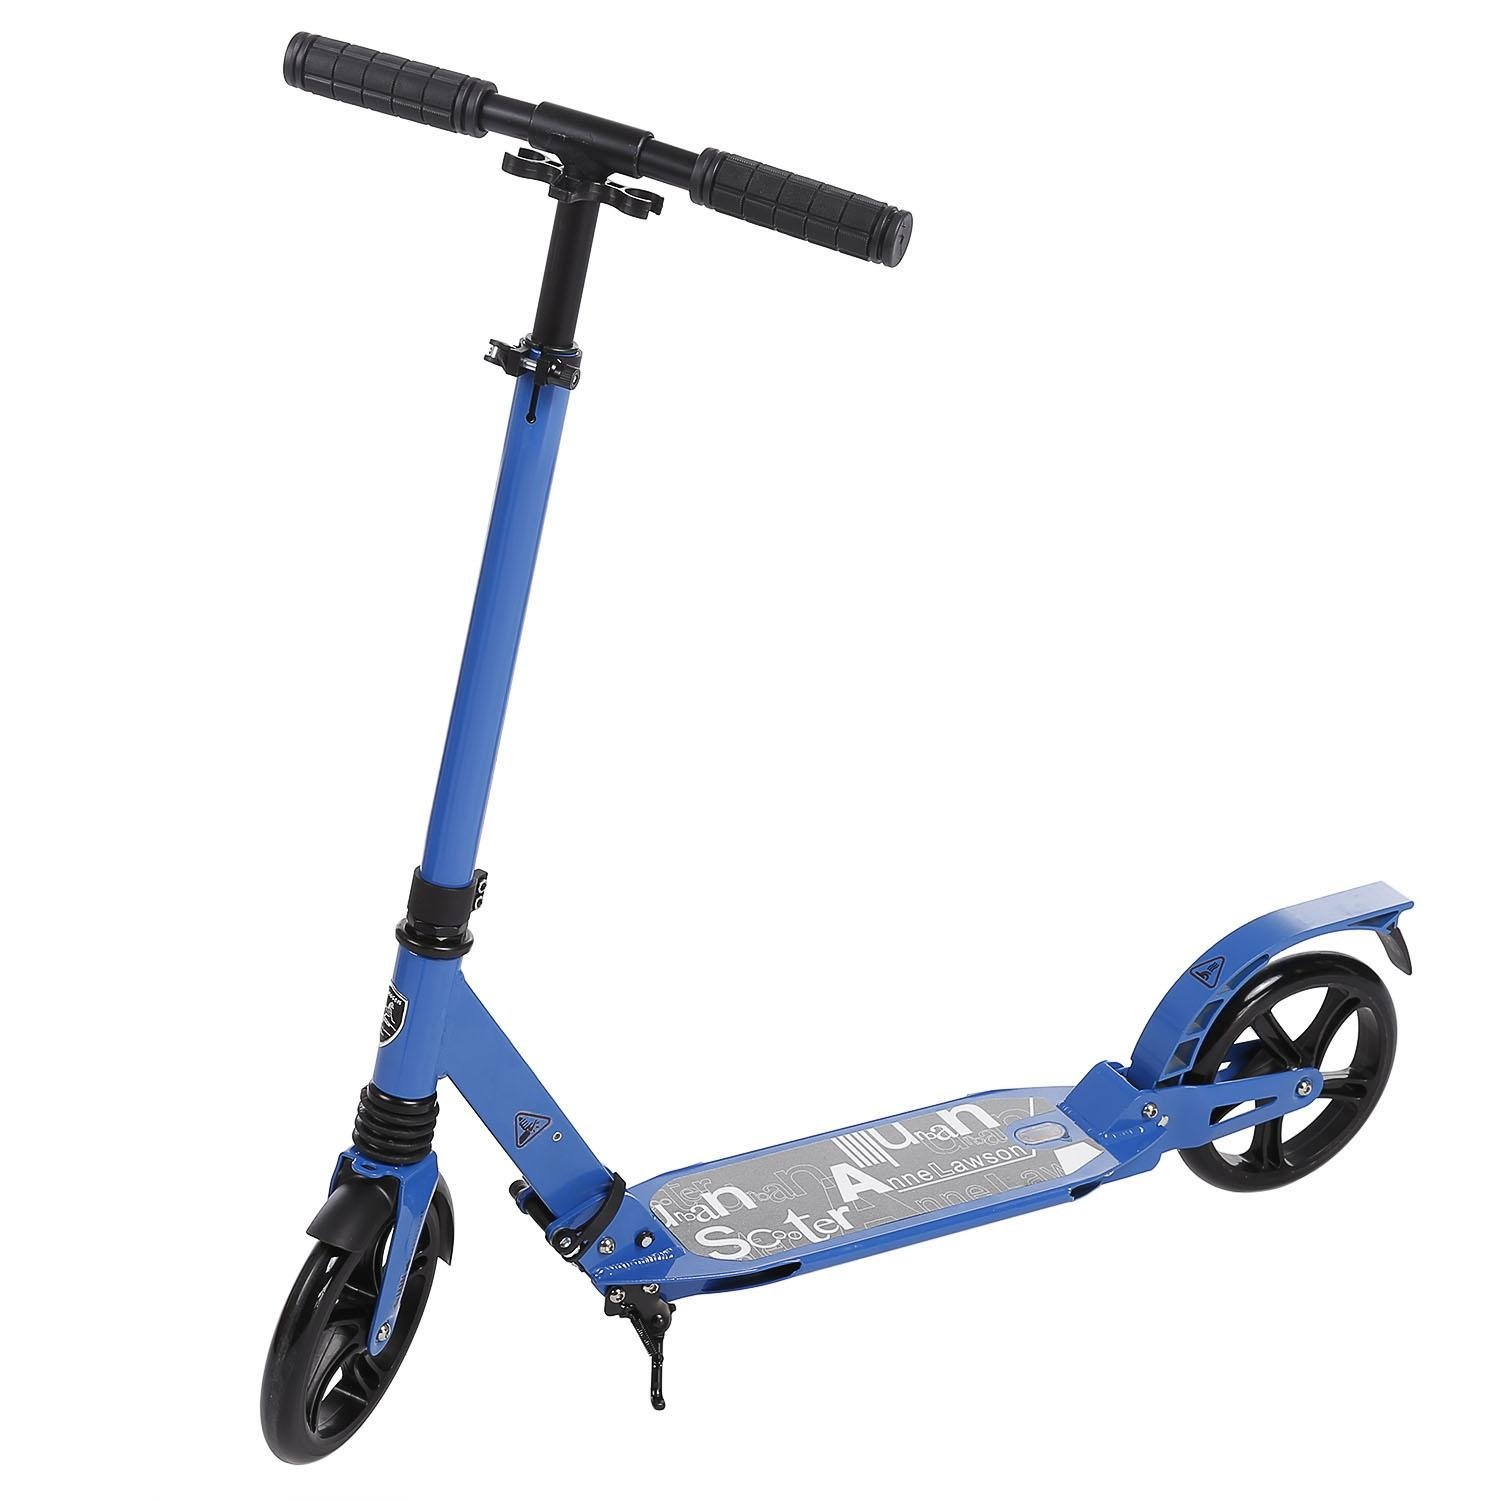 FDegage 2 Wheel Adjustable Kick Scooter Folding City Urban Commuter Street Push Scooters for Adult Teens